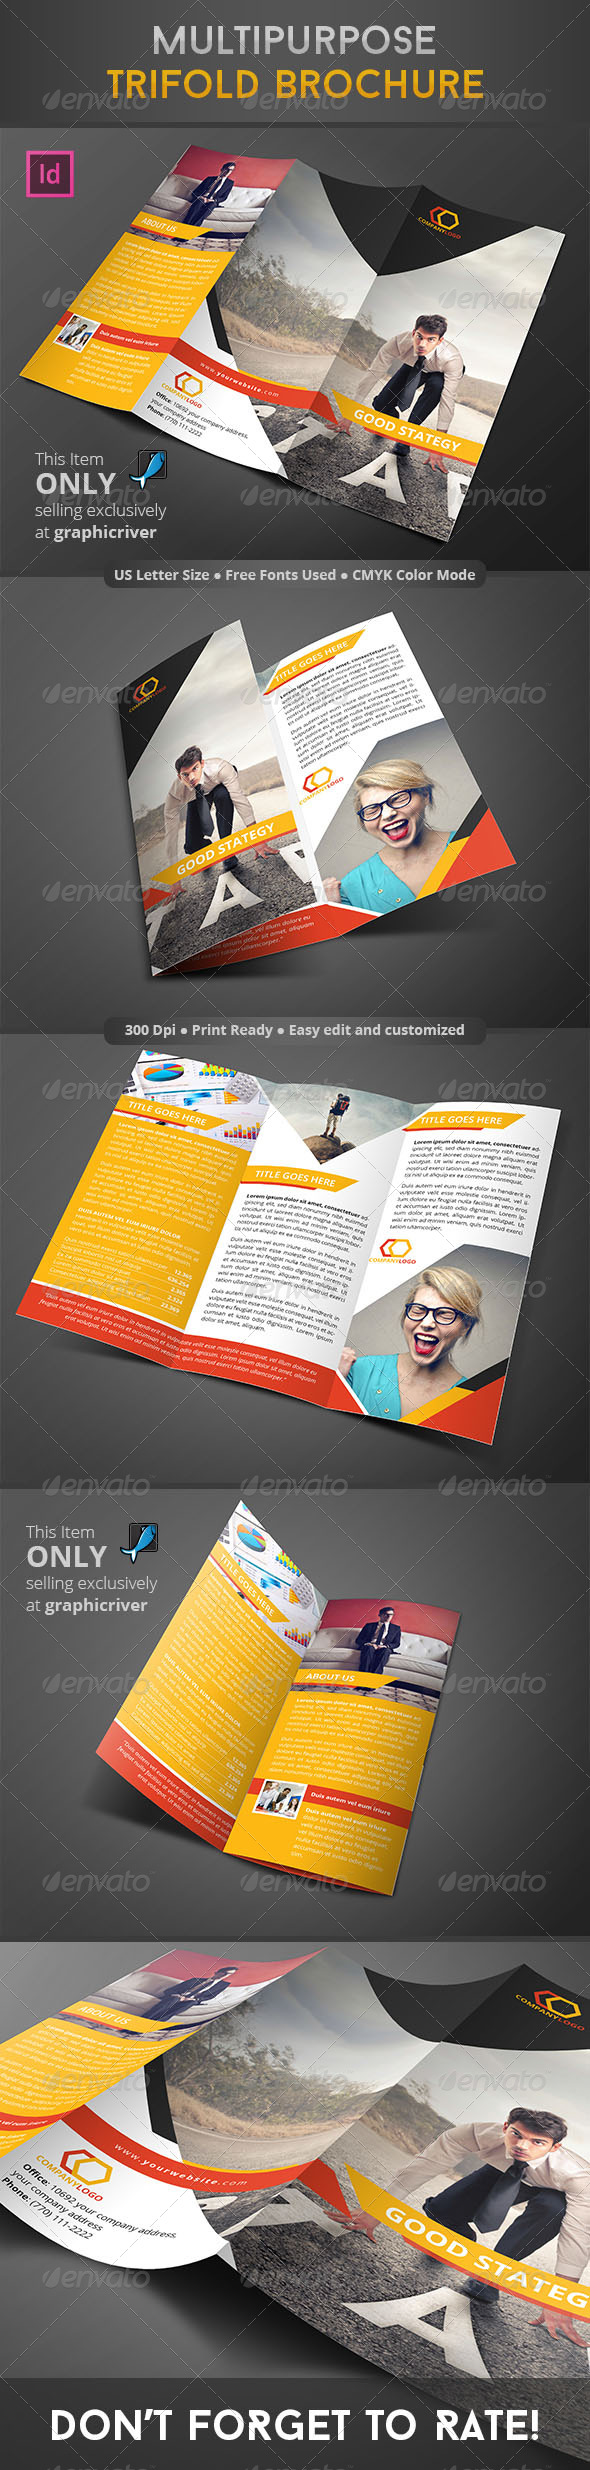 GraphicRiver Multipurpose Trifold Brochure 8625054